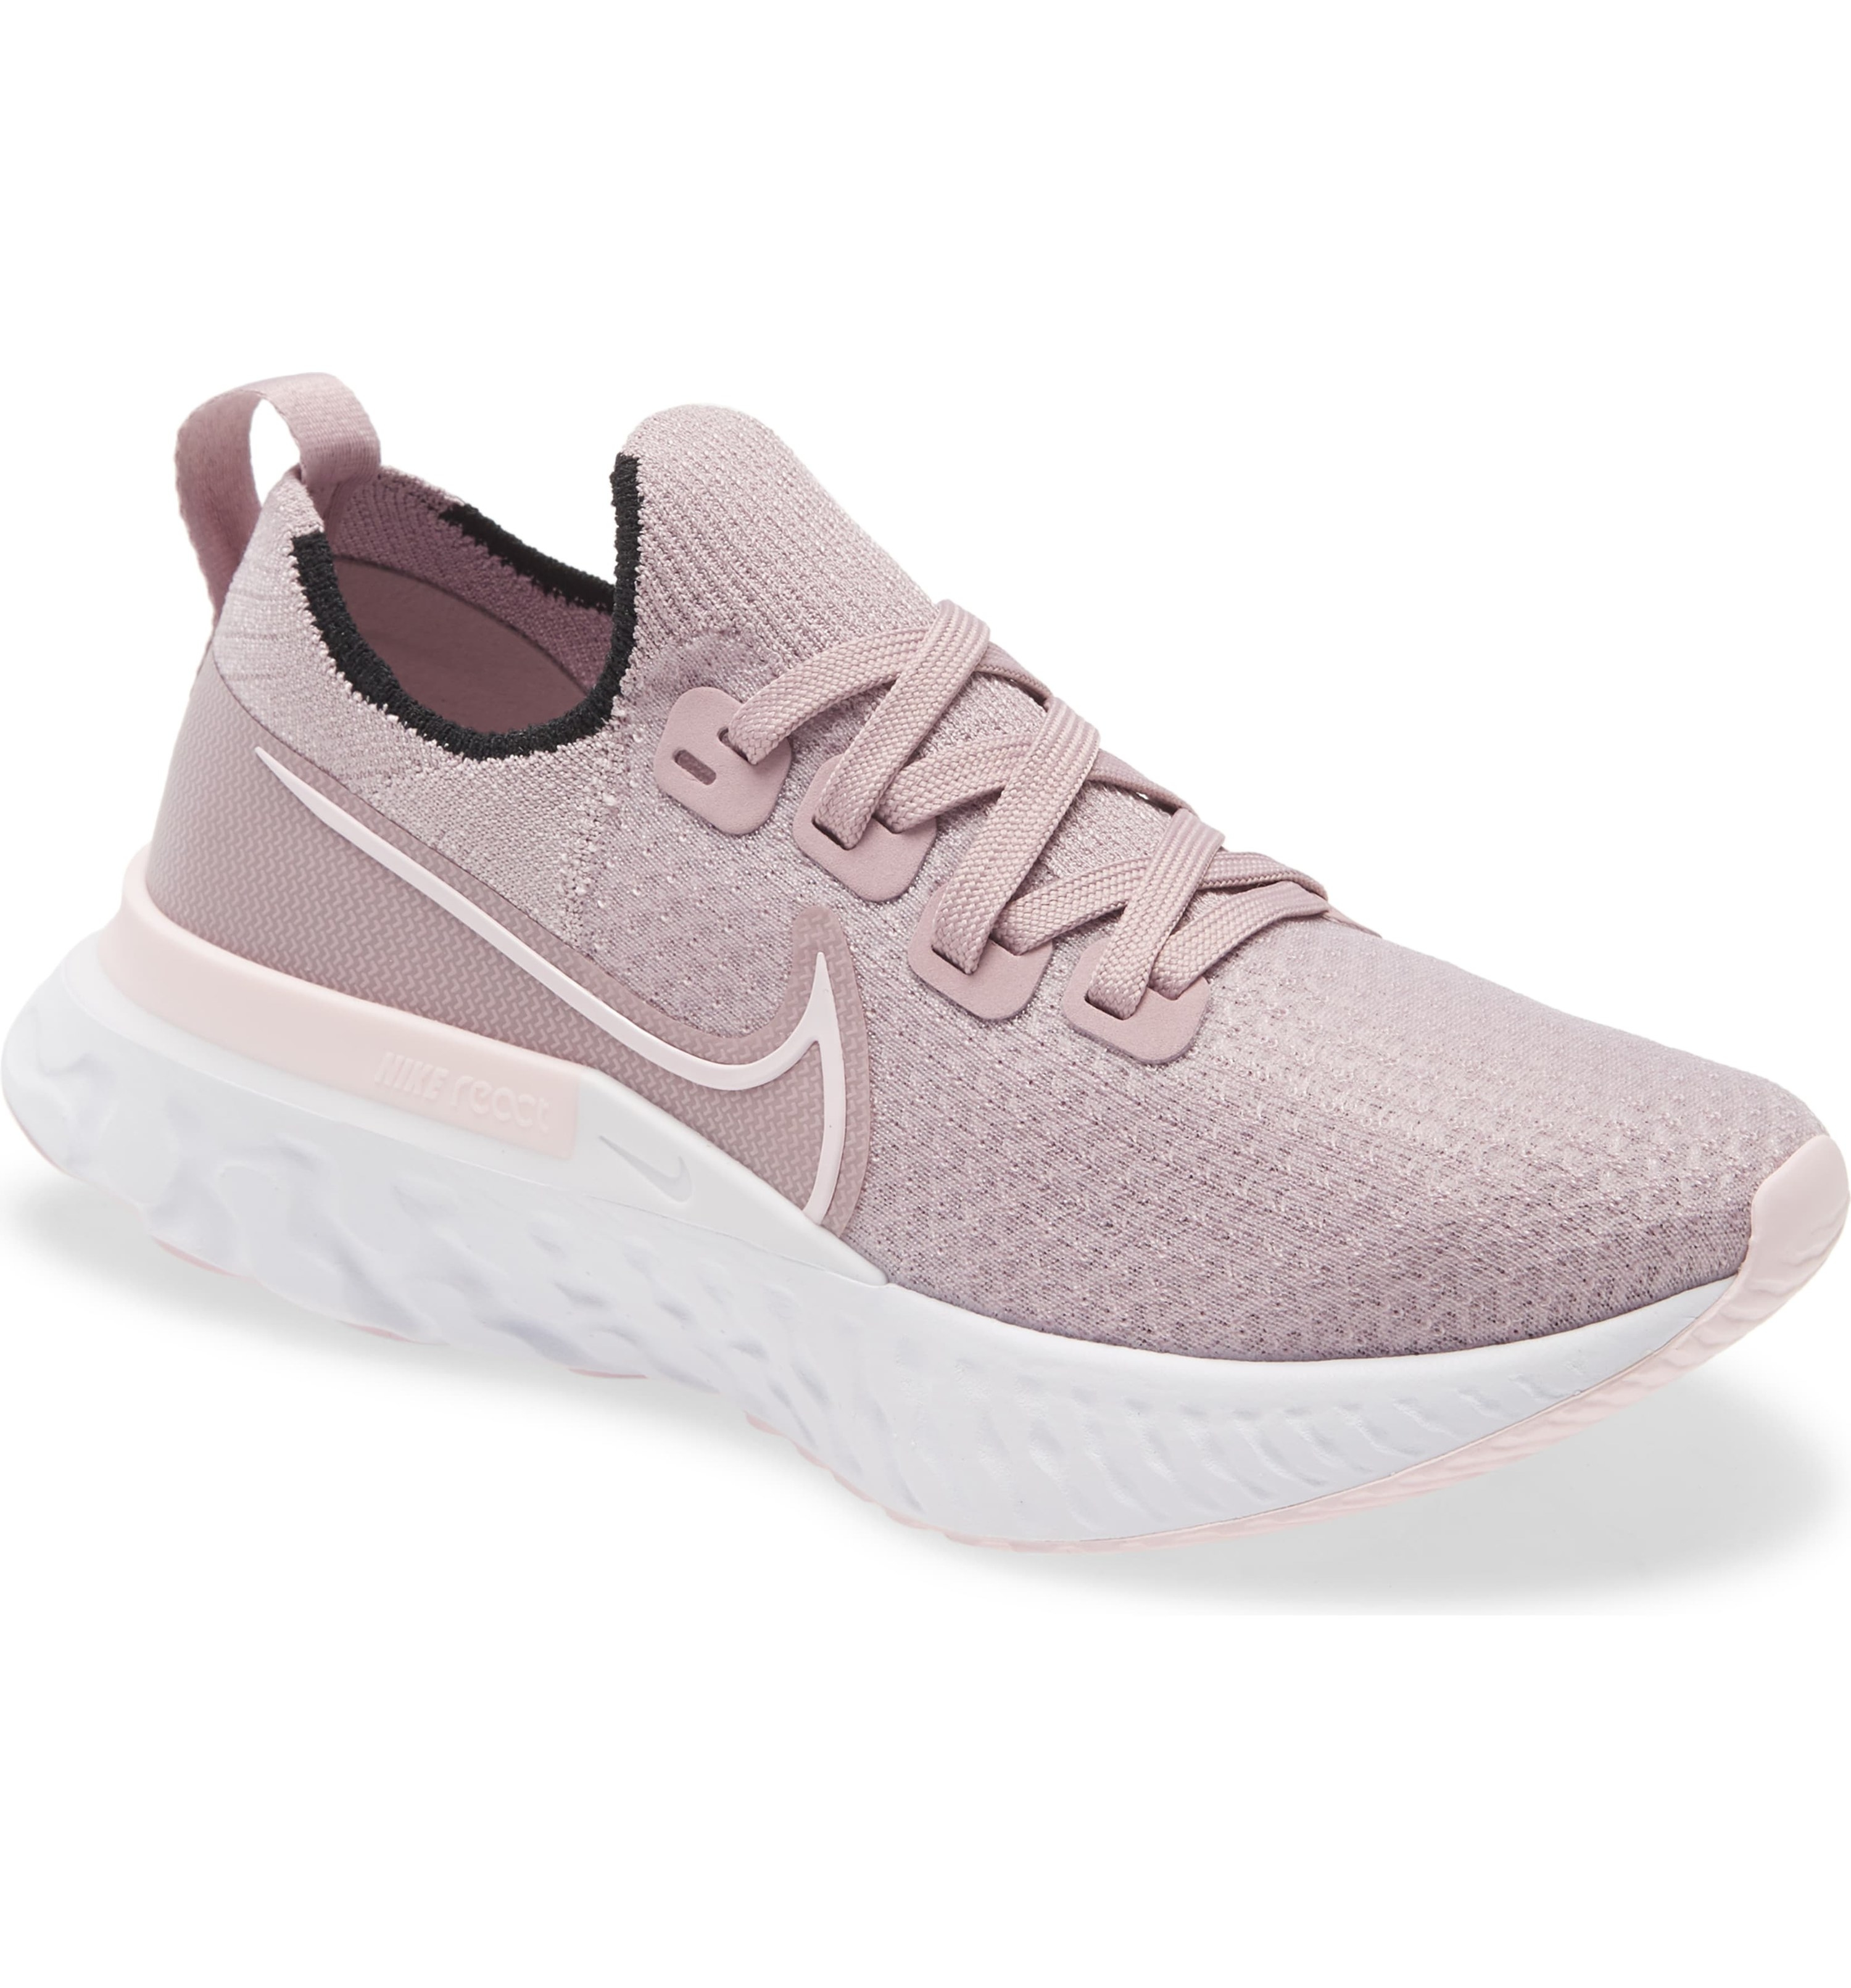 light pink knit nike running shoes